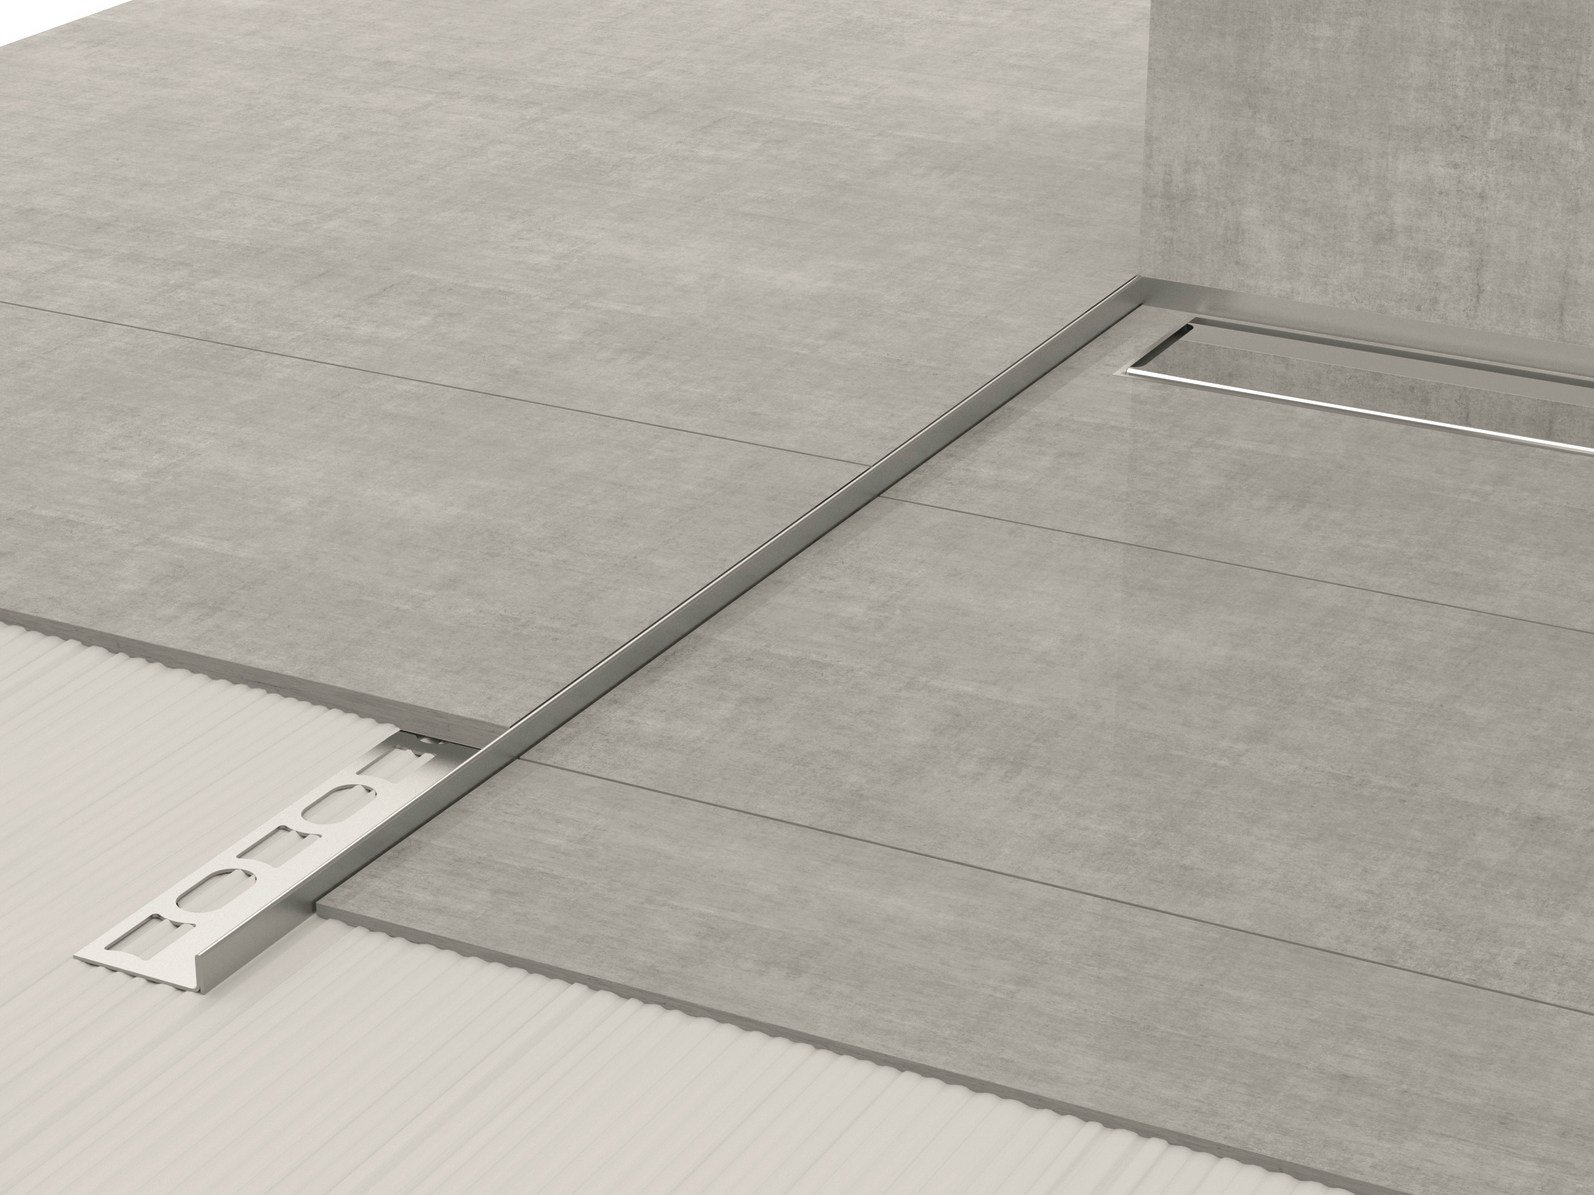 Image result for stainless steel flooring